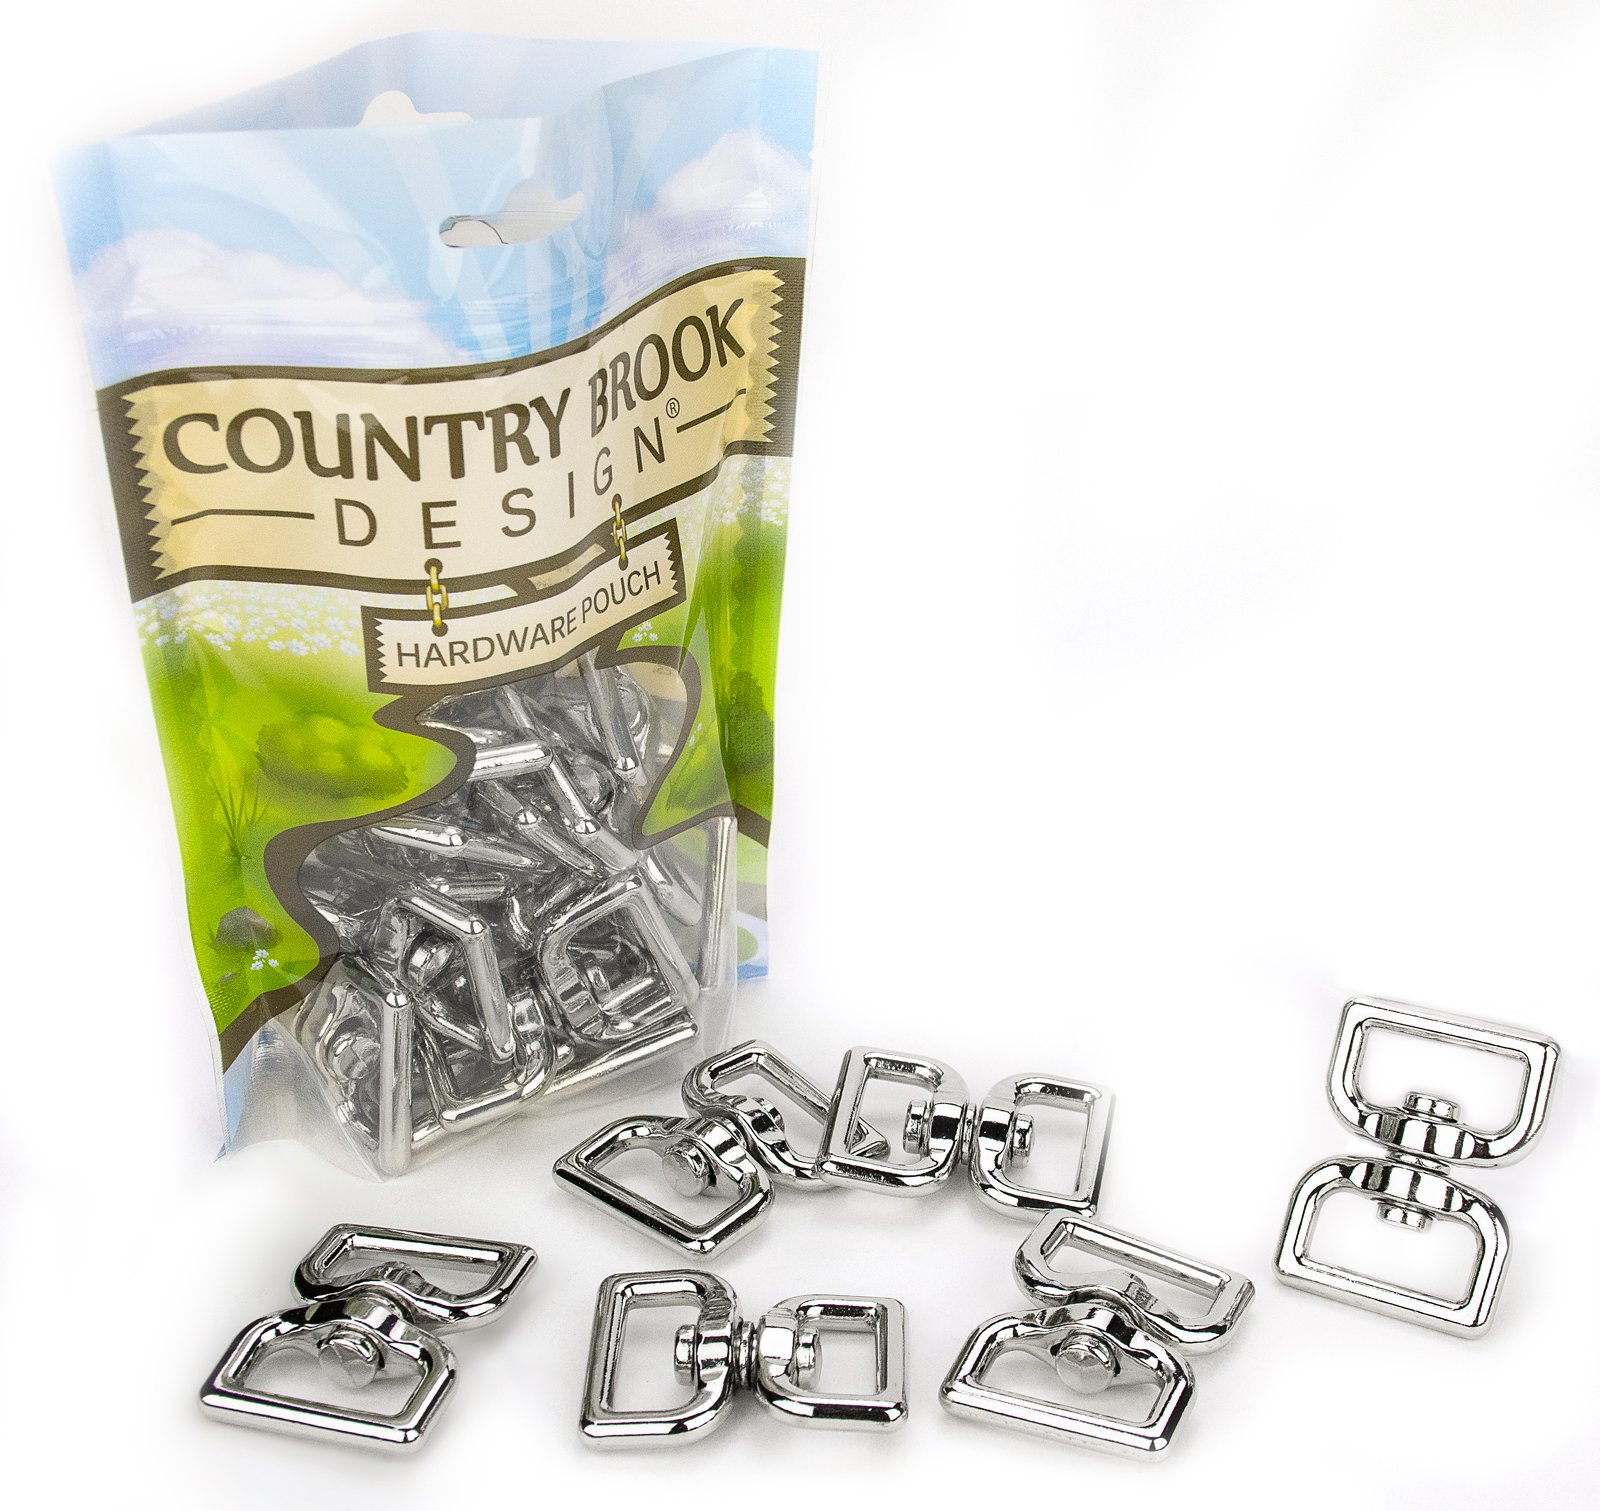 Country Brook Design 25-1 Inch Rectangle Double Eye Swivel Rings by Country Brook Design